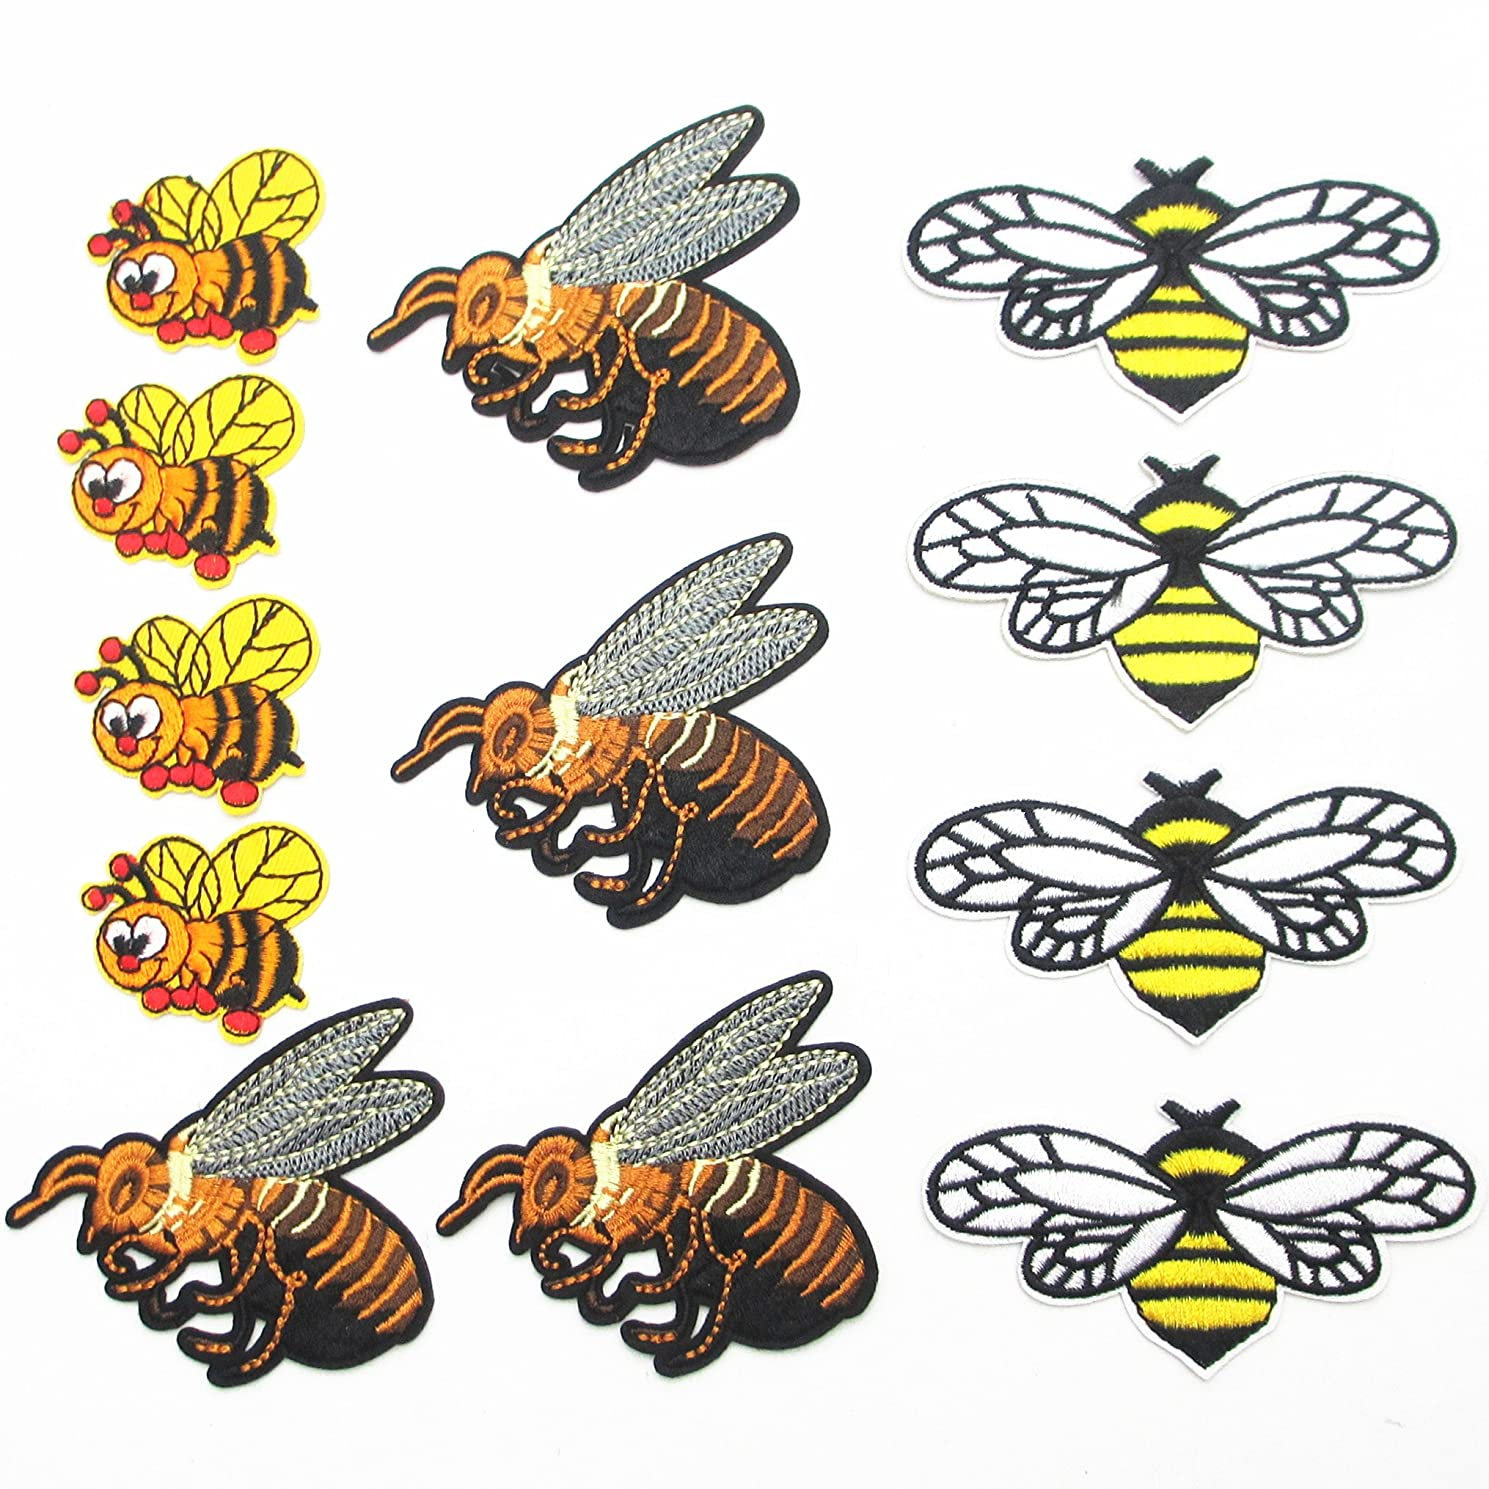 Dandan DIY 12pcs Assorted Embroidered Bees Patch Sew On/Iron On Patch Animal Applique Clothes Dress Plant Hat Jeans Sewing Applique Home Curtain Diy Accessory